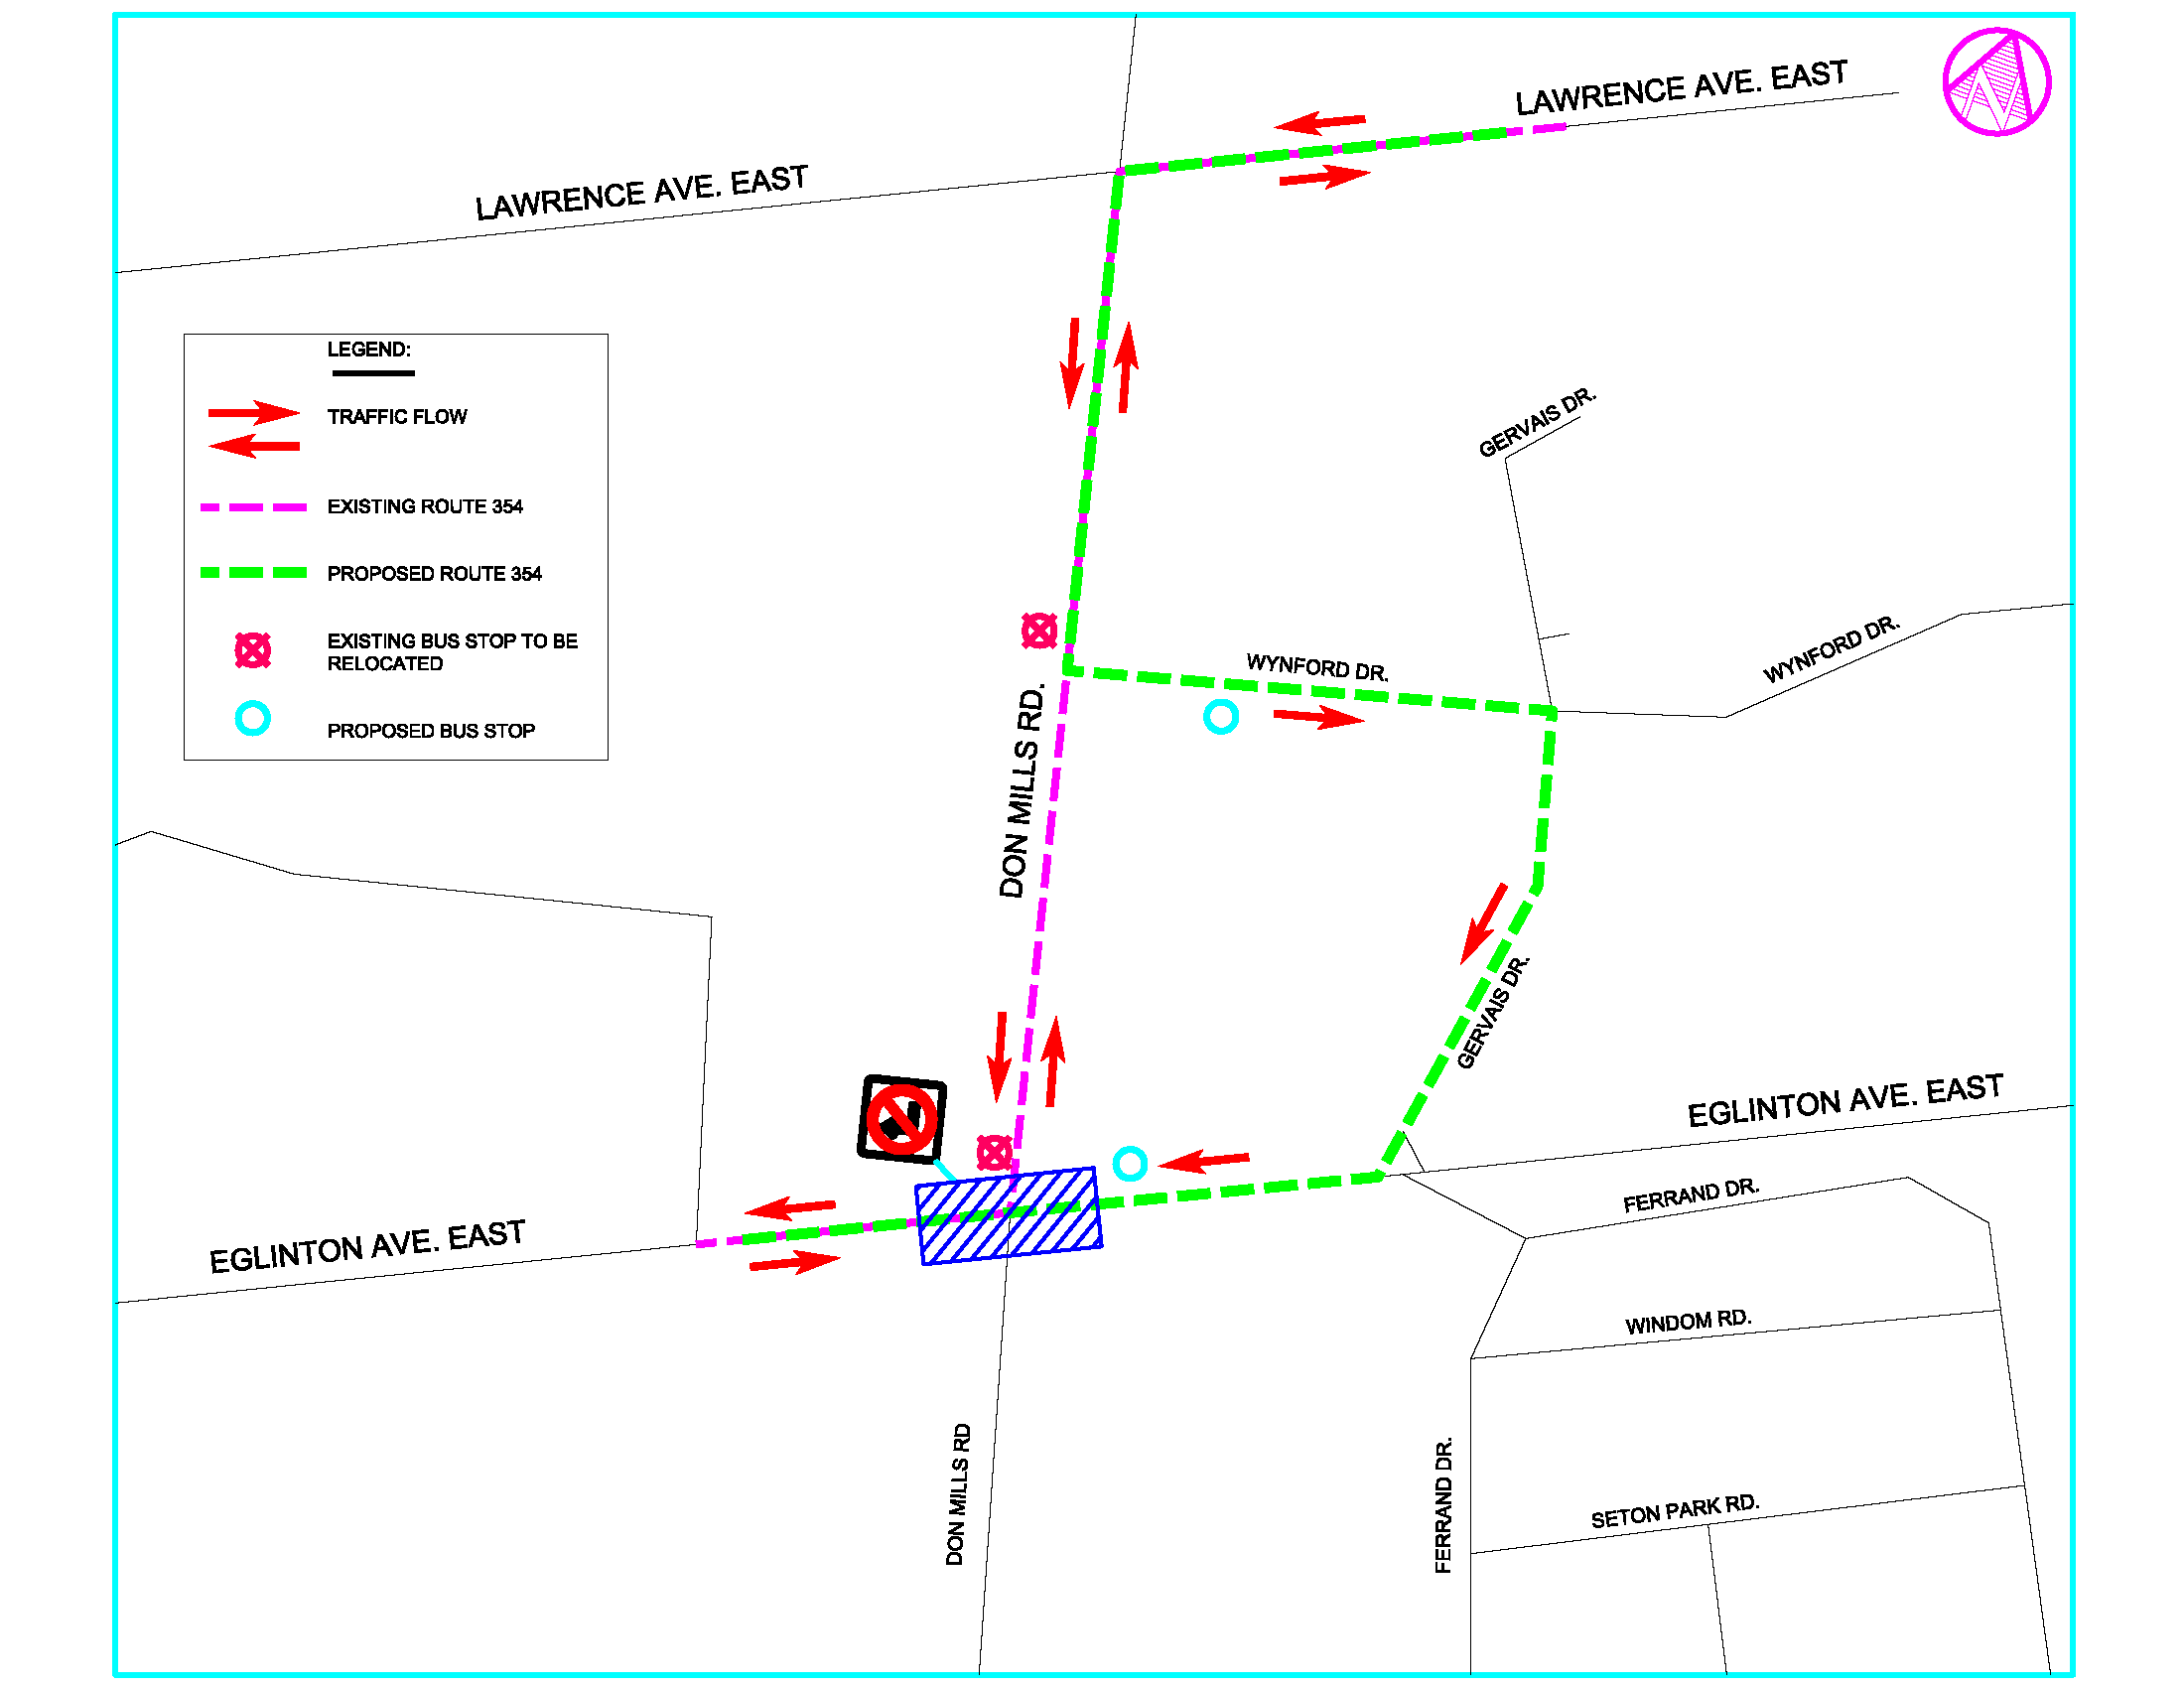 Showing the TTC Bus Route #354 (Lawrence East) overnight bus detour route